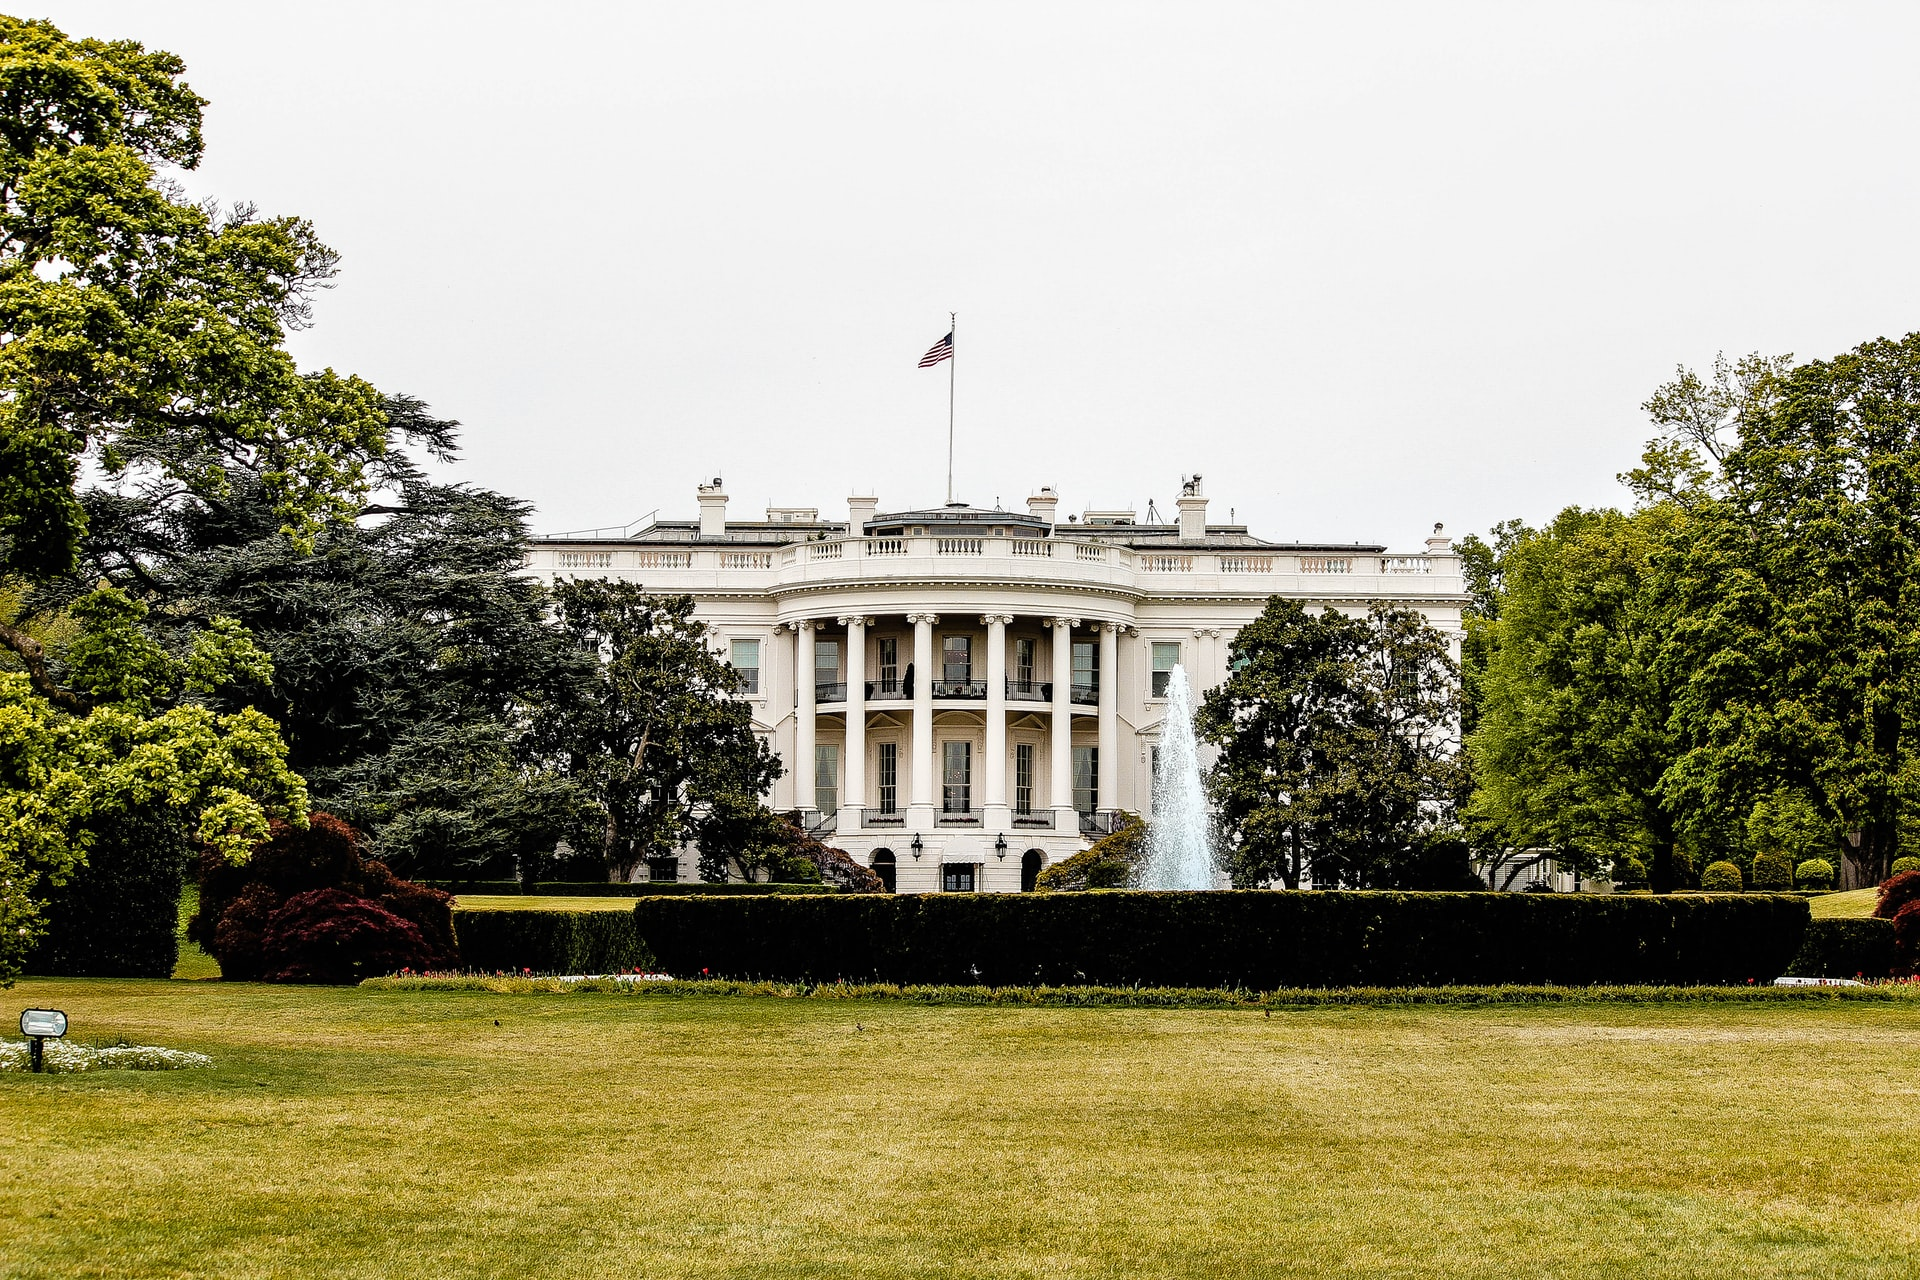 The White House in America